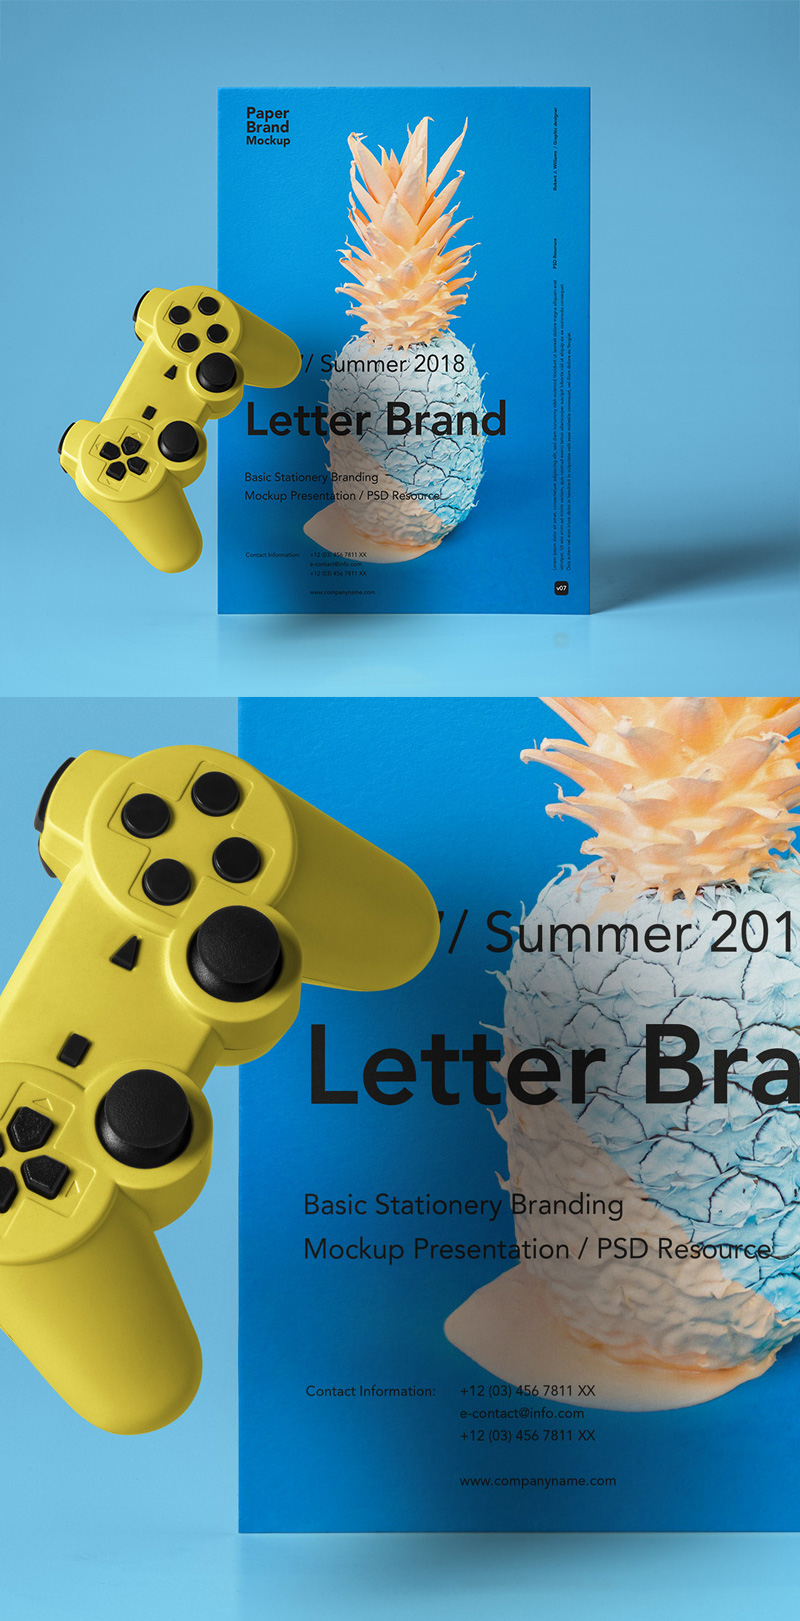 Free-Psd-Game-Controller-With-Paper-Brand-Mockup-2018-600